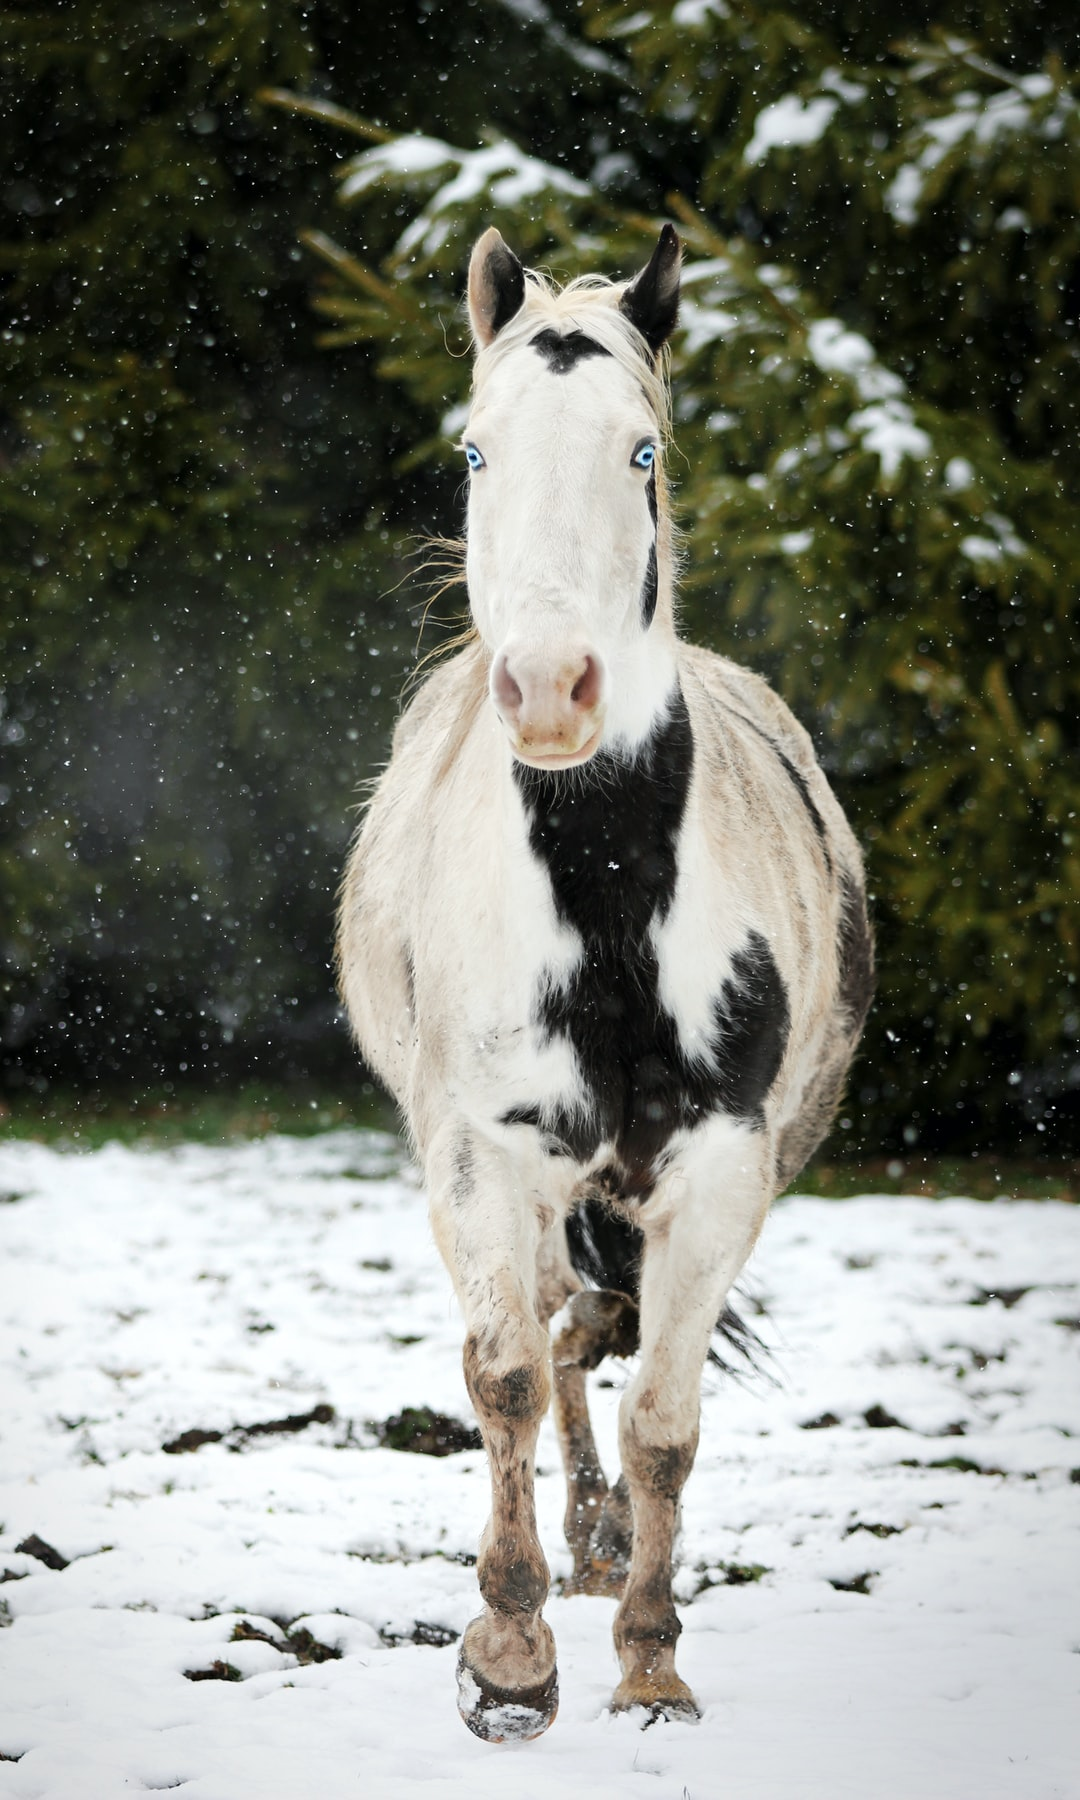 A black and white paint horse with blue eyes breathes cold air in the winter.